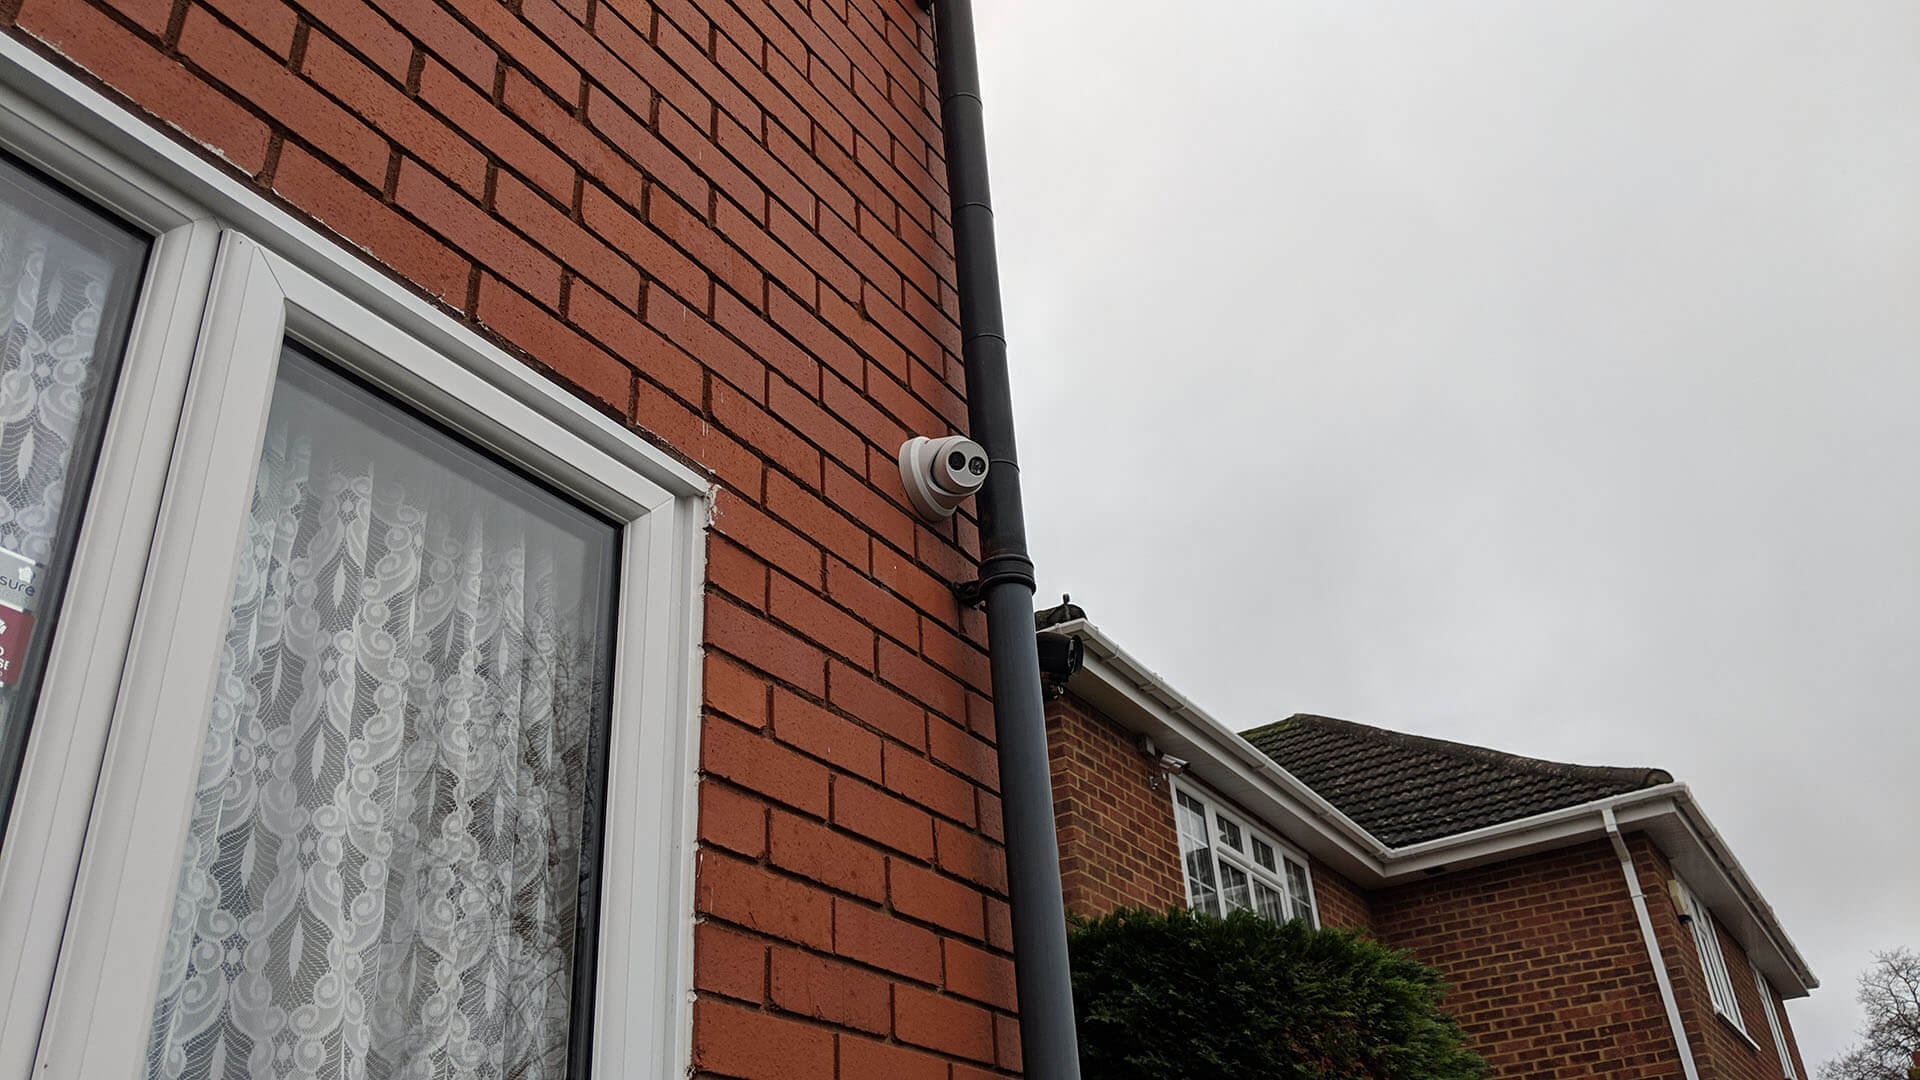 4K CCTV Installation in Chatham